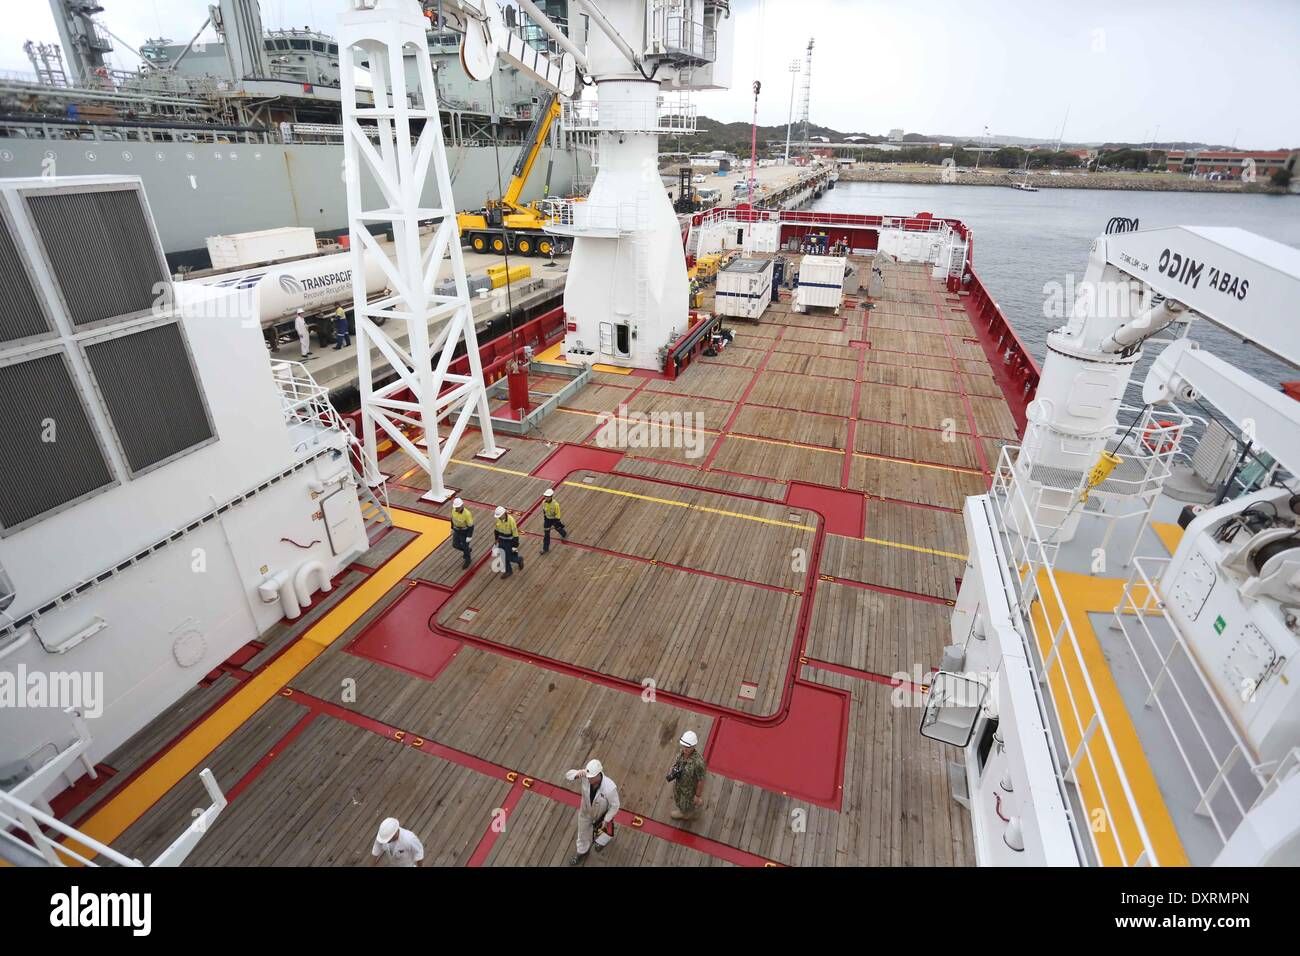 Perth, Australia . 30th Mar, 2014. Australian Defence Vessel Ocean Shield is loaded with supplies and equipments Stock Photo